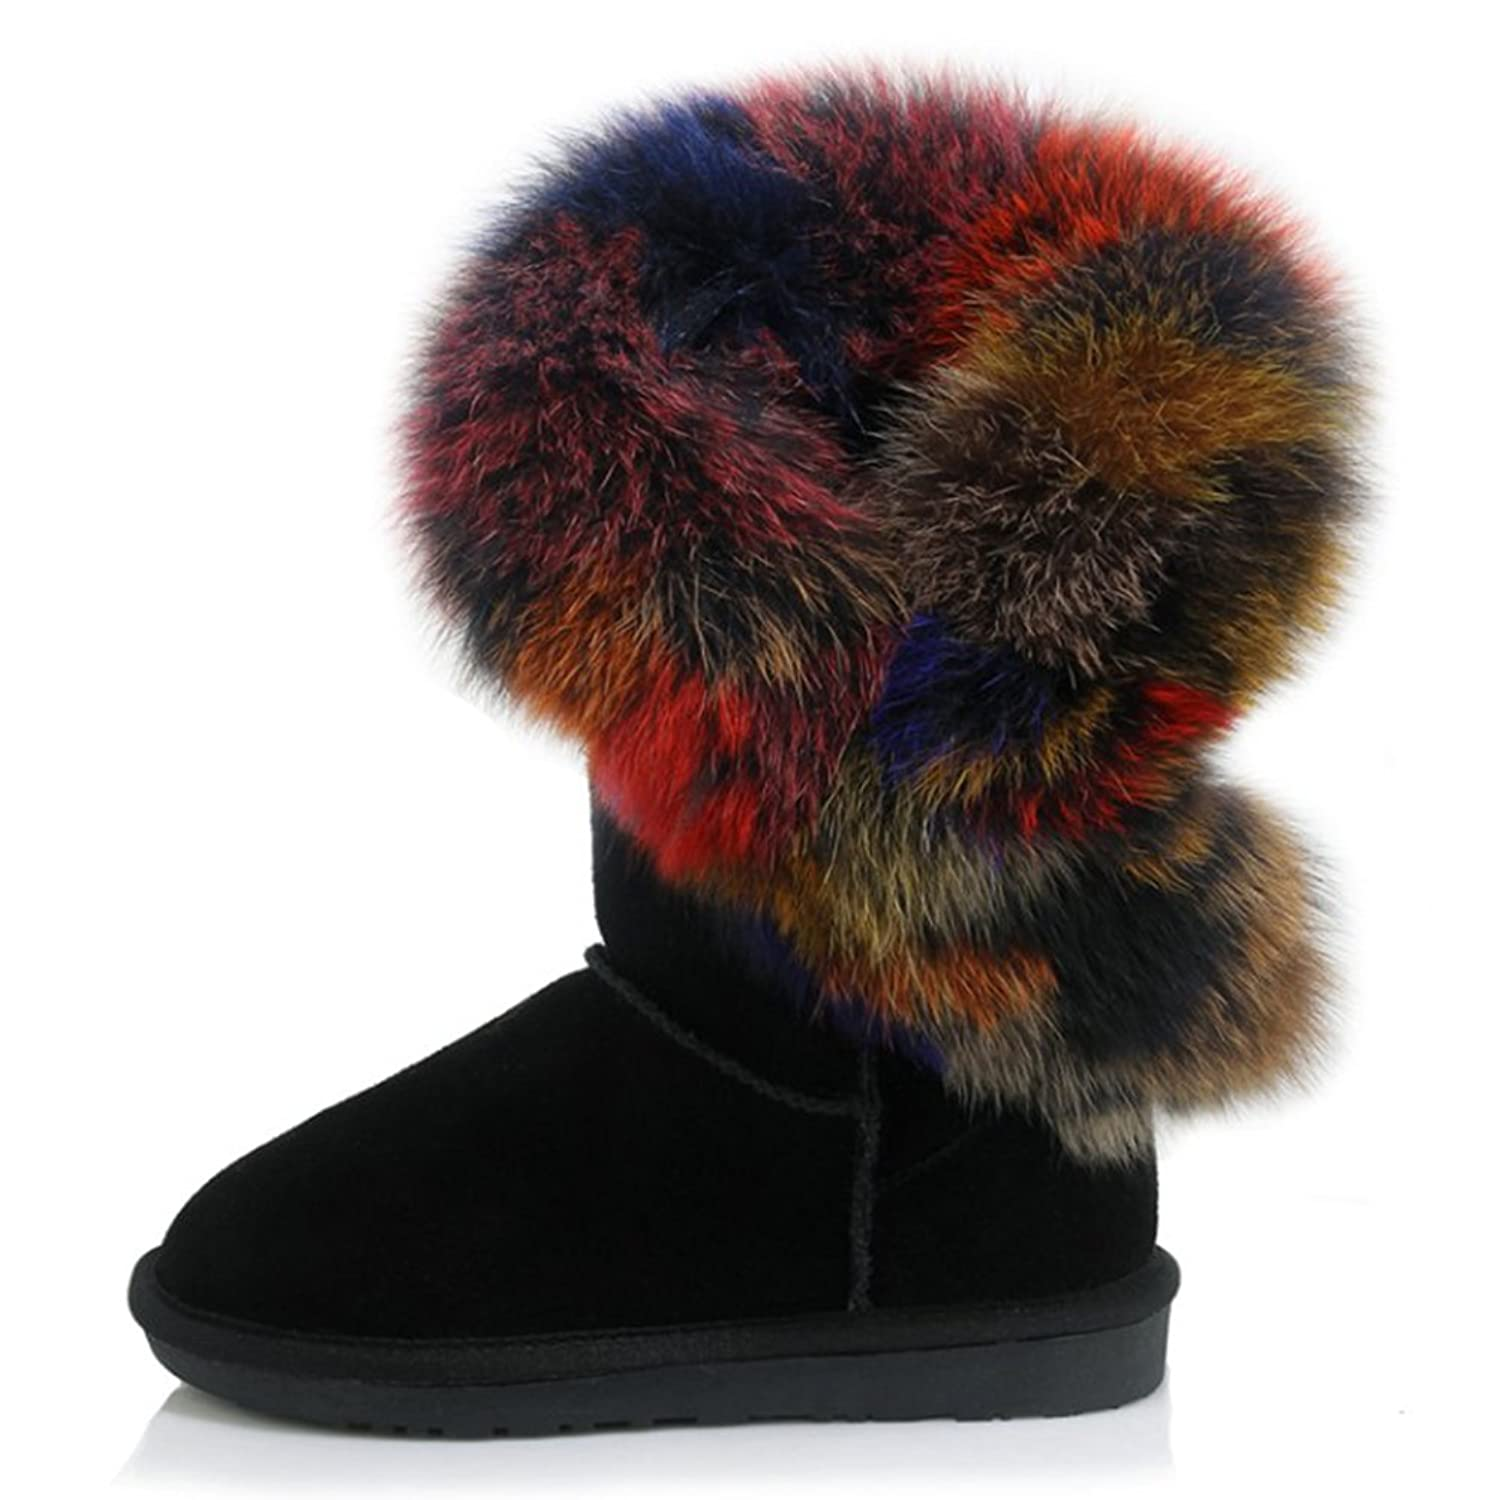 VASHOP Women's Mid Calf Boots Fur Snow Winter Boots Cow Leather Snow Boot